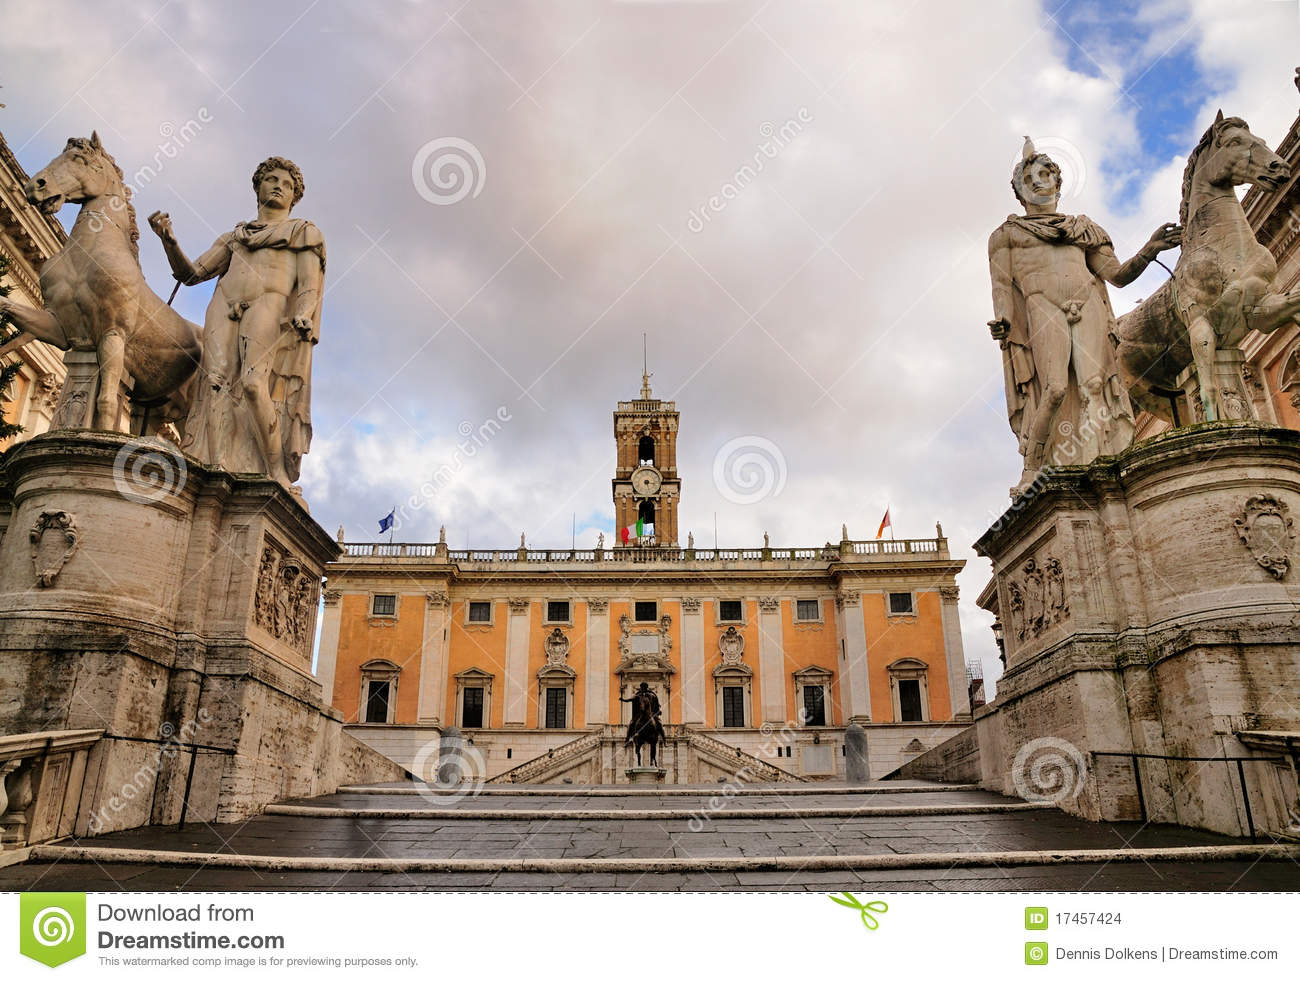 Statues of the Capitol, Rome